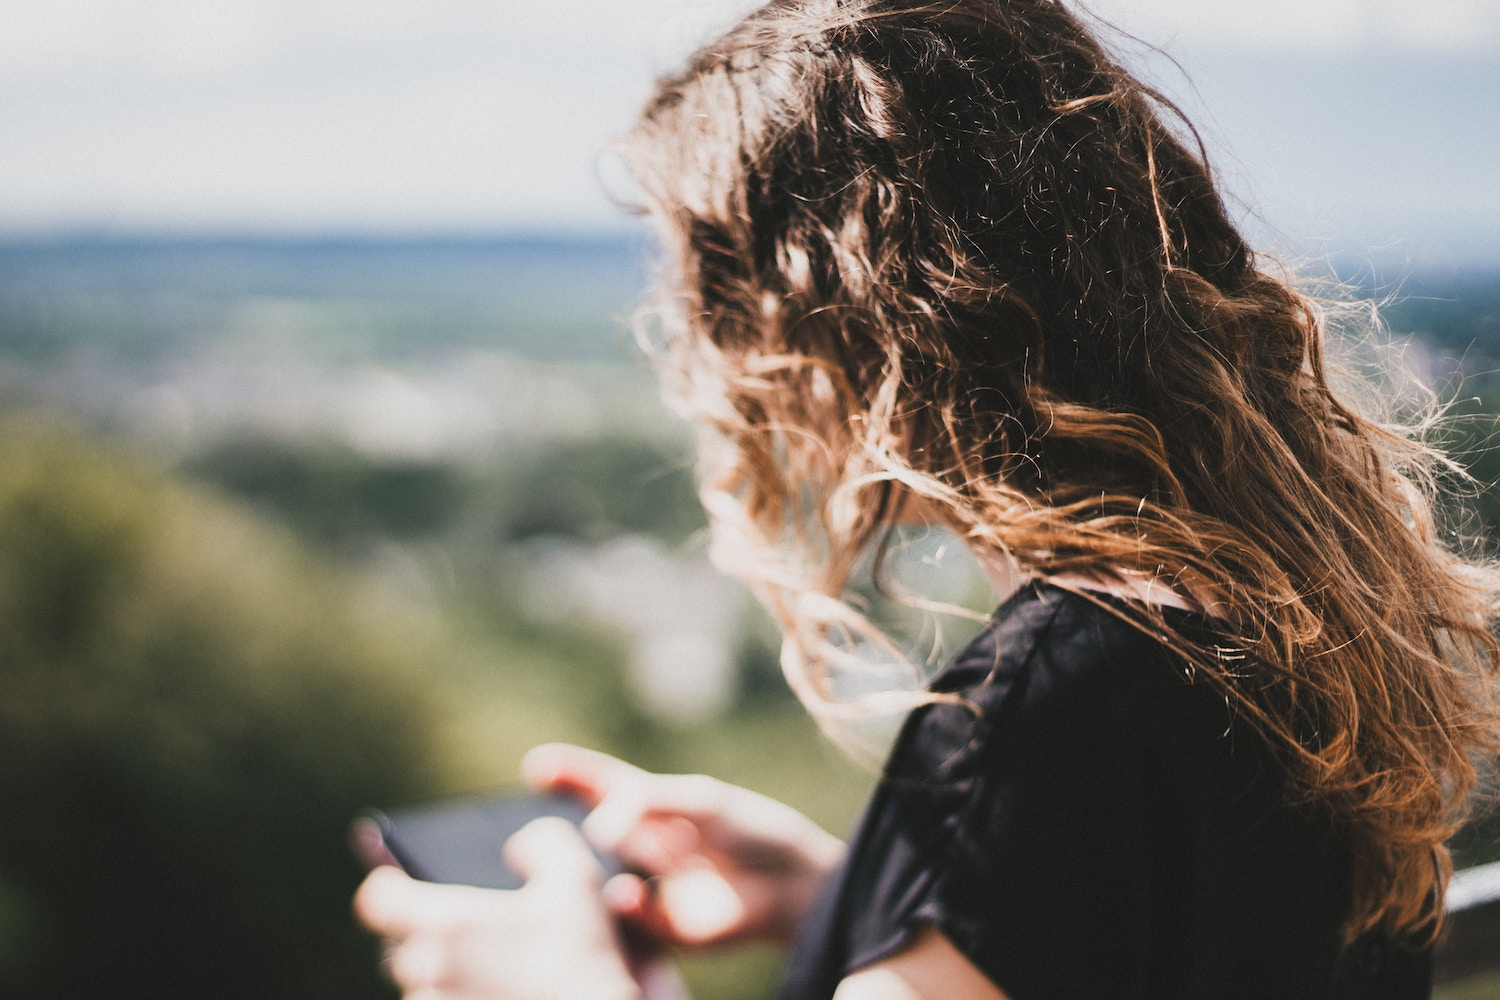 Turn Your Phone Off 5 Ways to be More Productive Work Smarter Not Harder